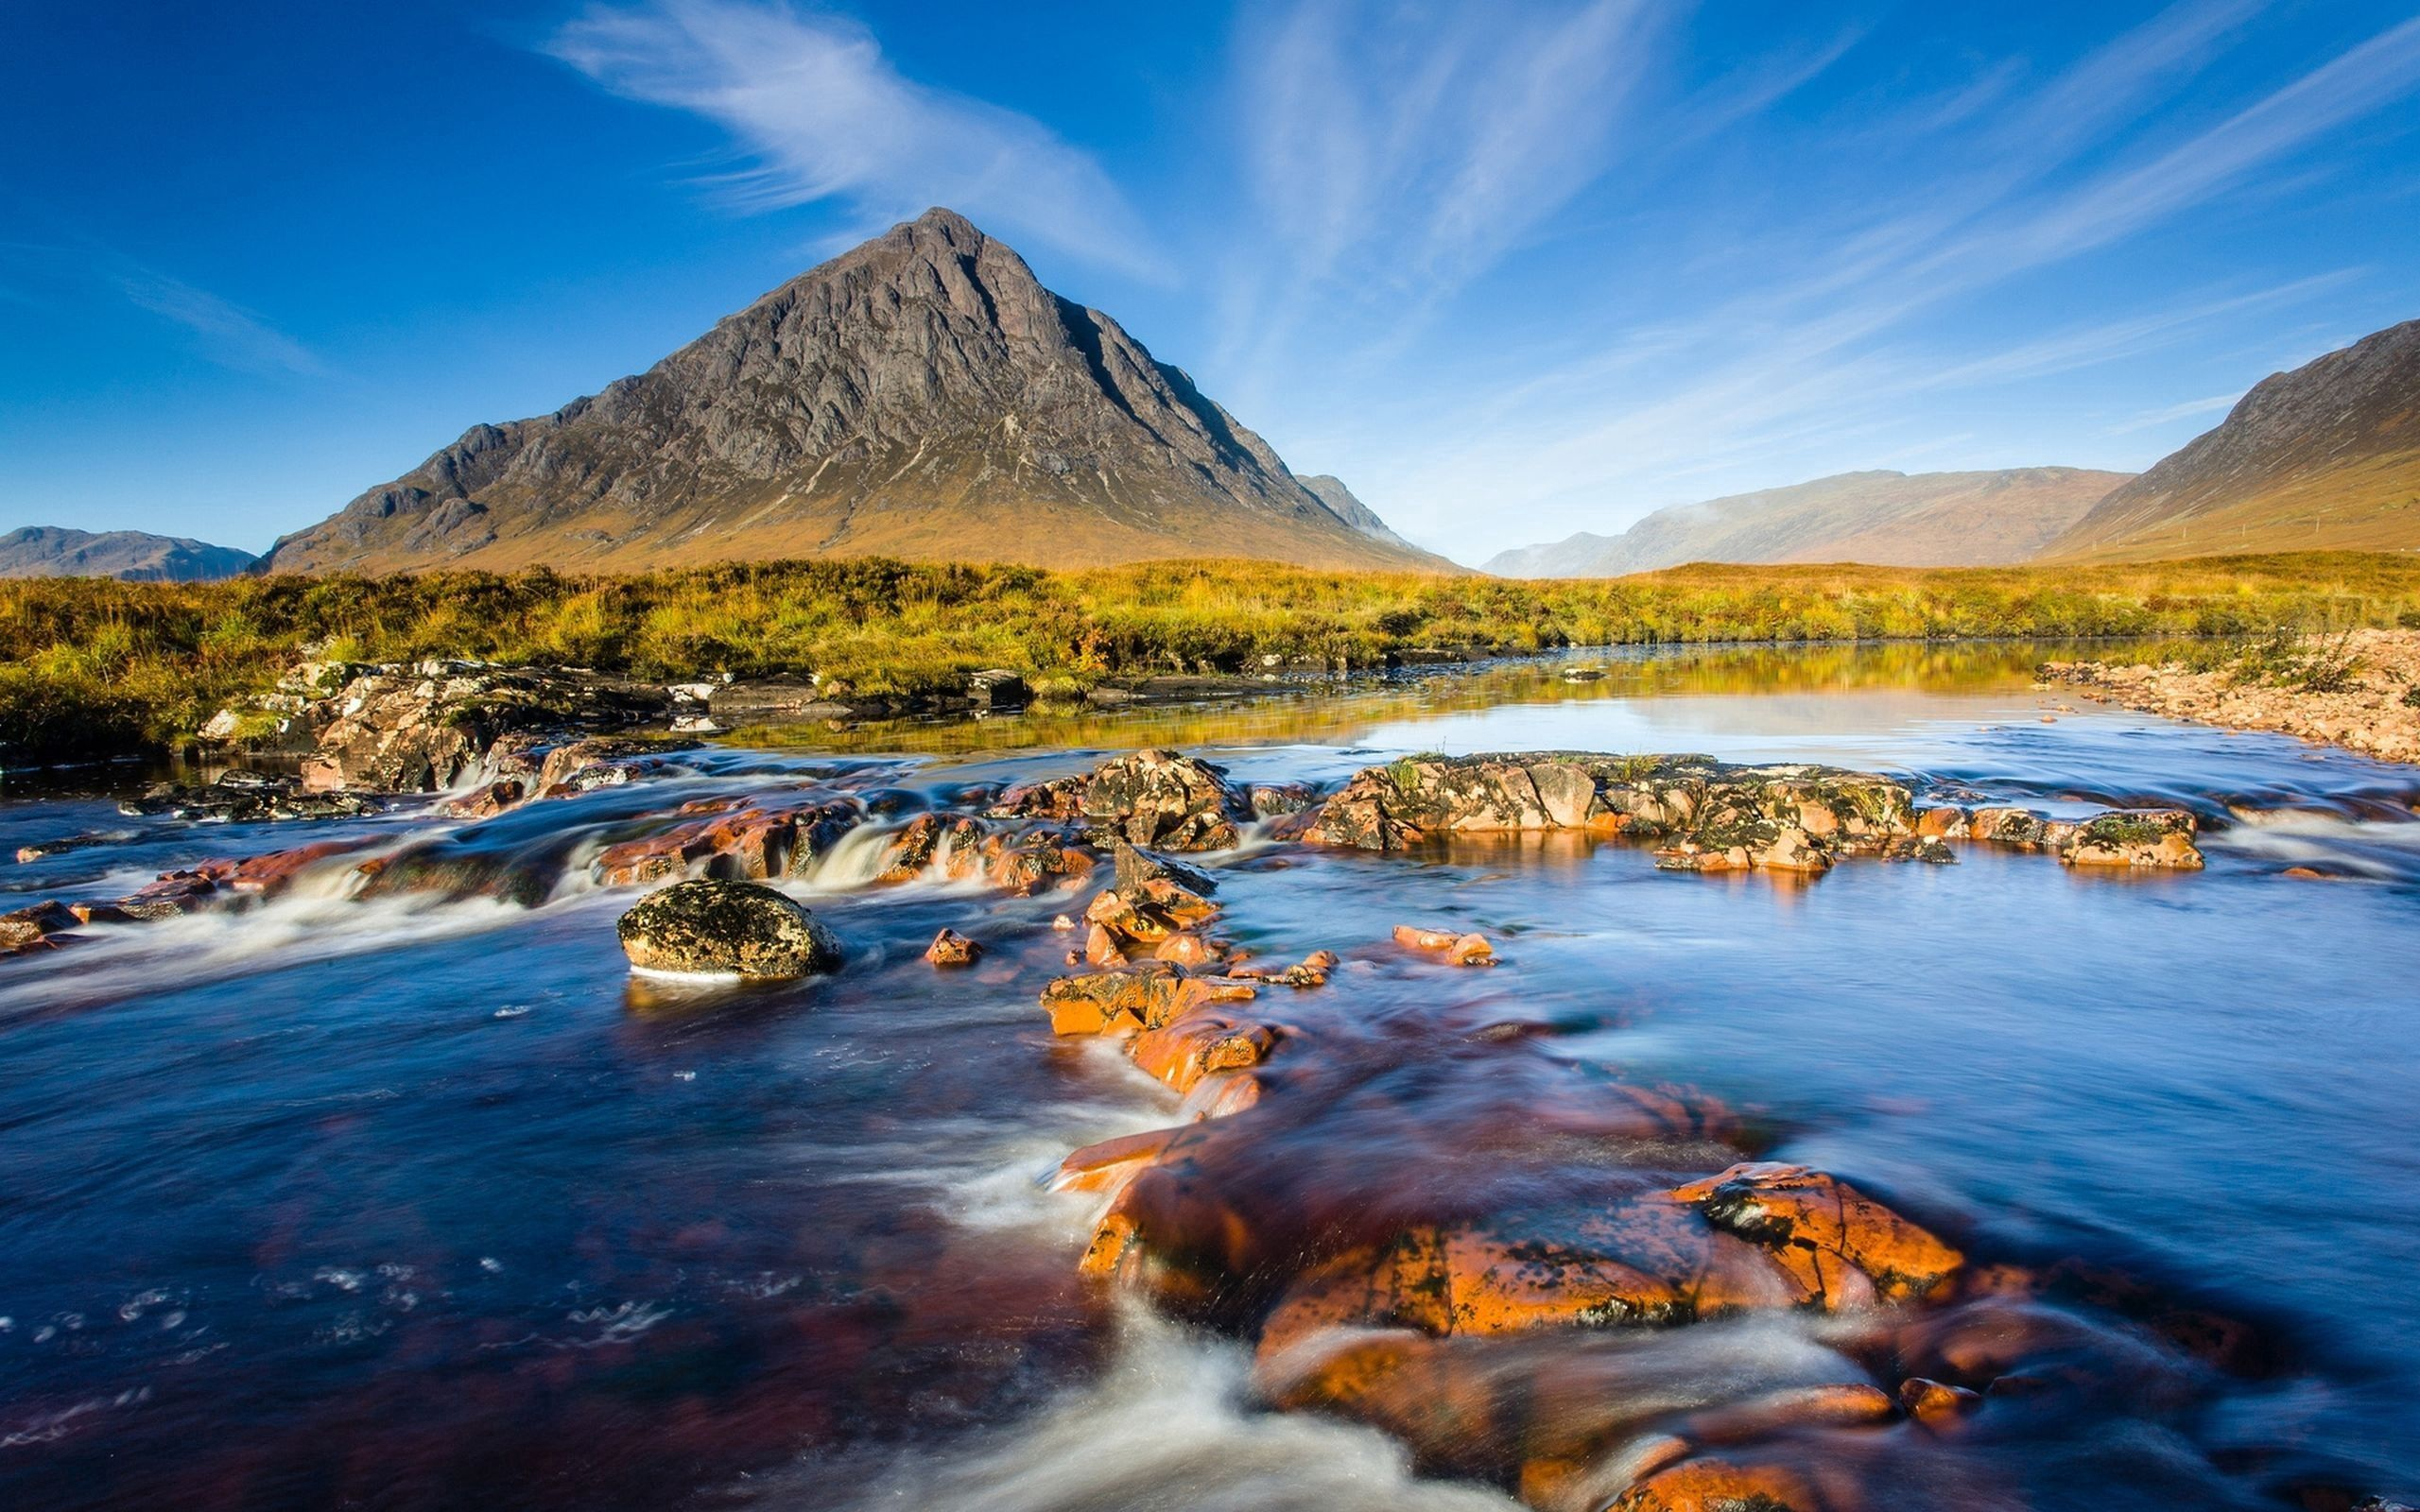 74408 download wallpaper Nature, Rivers, Sky, Mountain, Vertex, Top, Foam screensavers and pictures for free